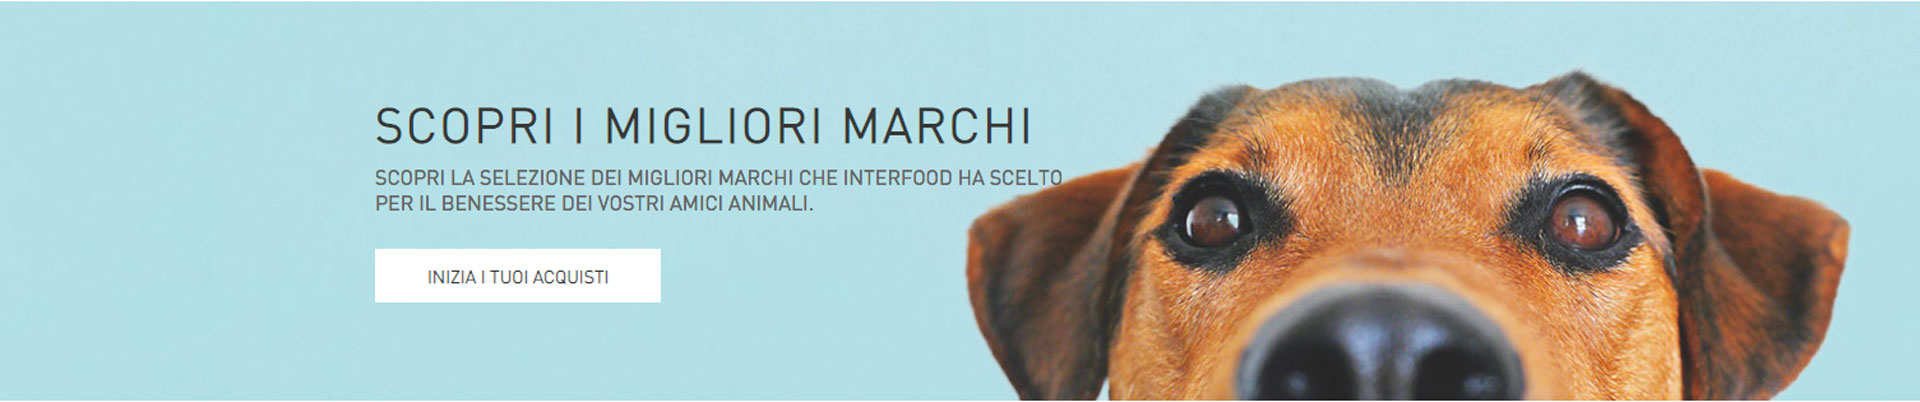 GSite Progetti Ecommerce Interfood banner promozionale